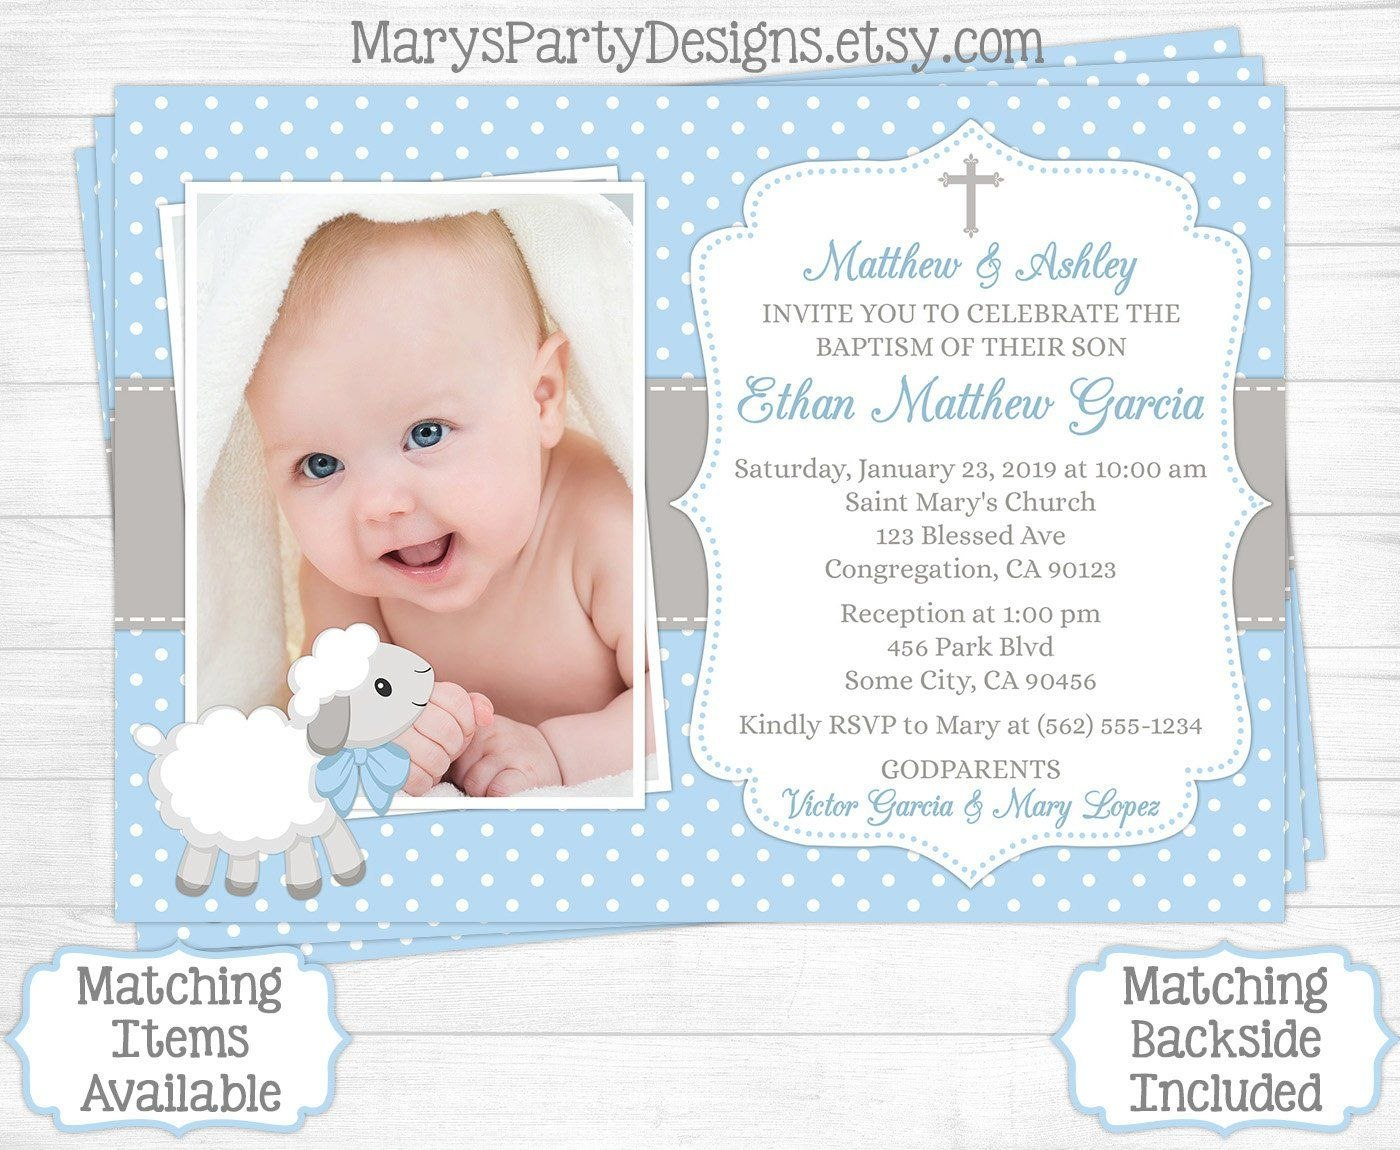 Special Invitation Card Christening Layout Invitation Template Intended For Baptism Invitation Card Template